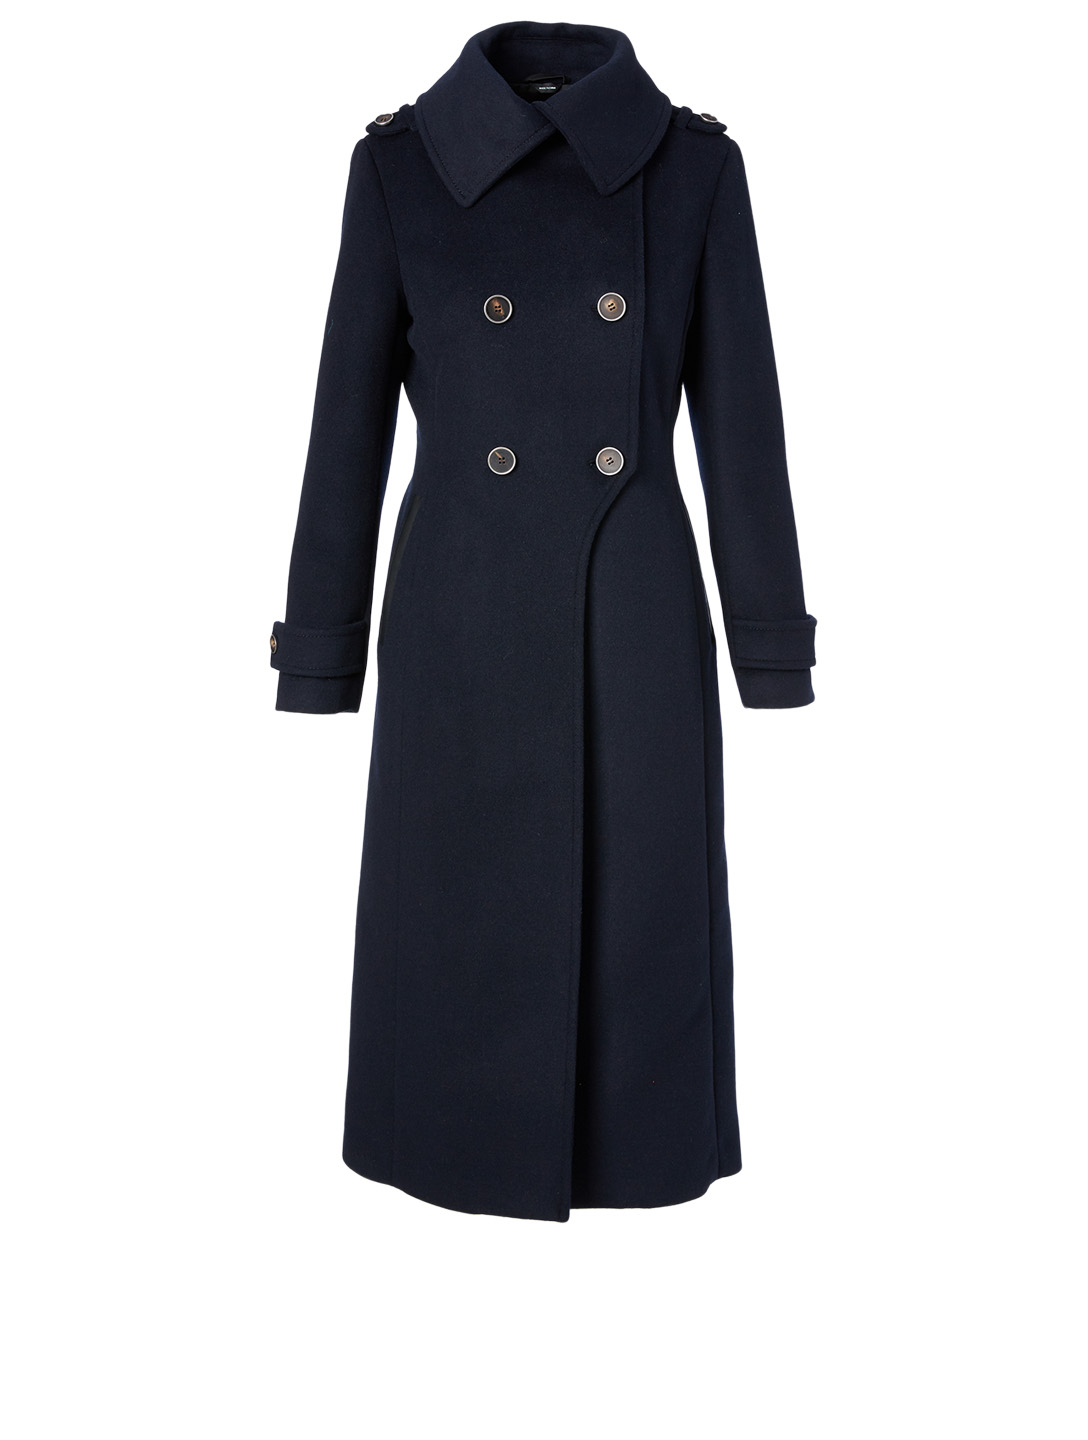 MACKAGE Elodie Wool Military Coat Women's Blue